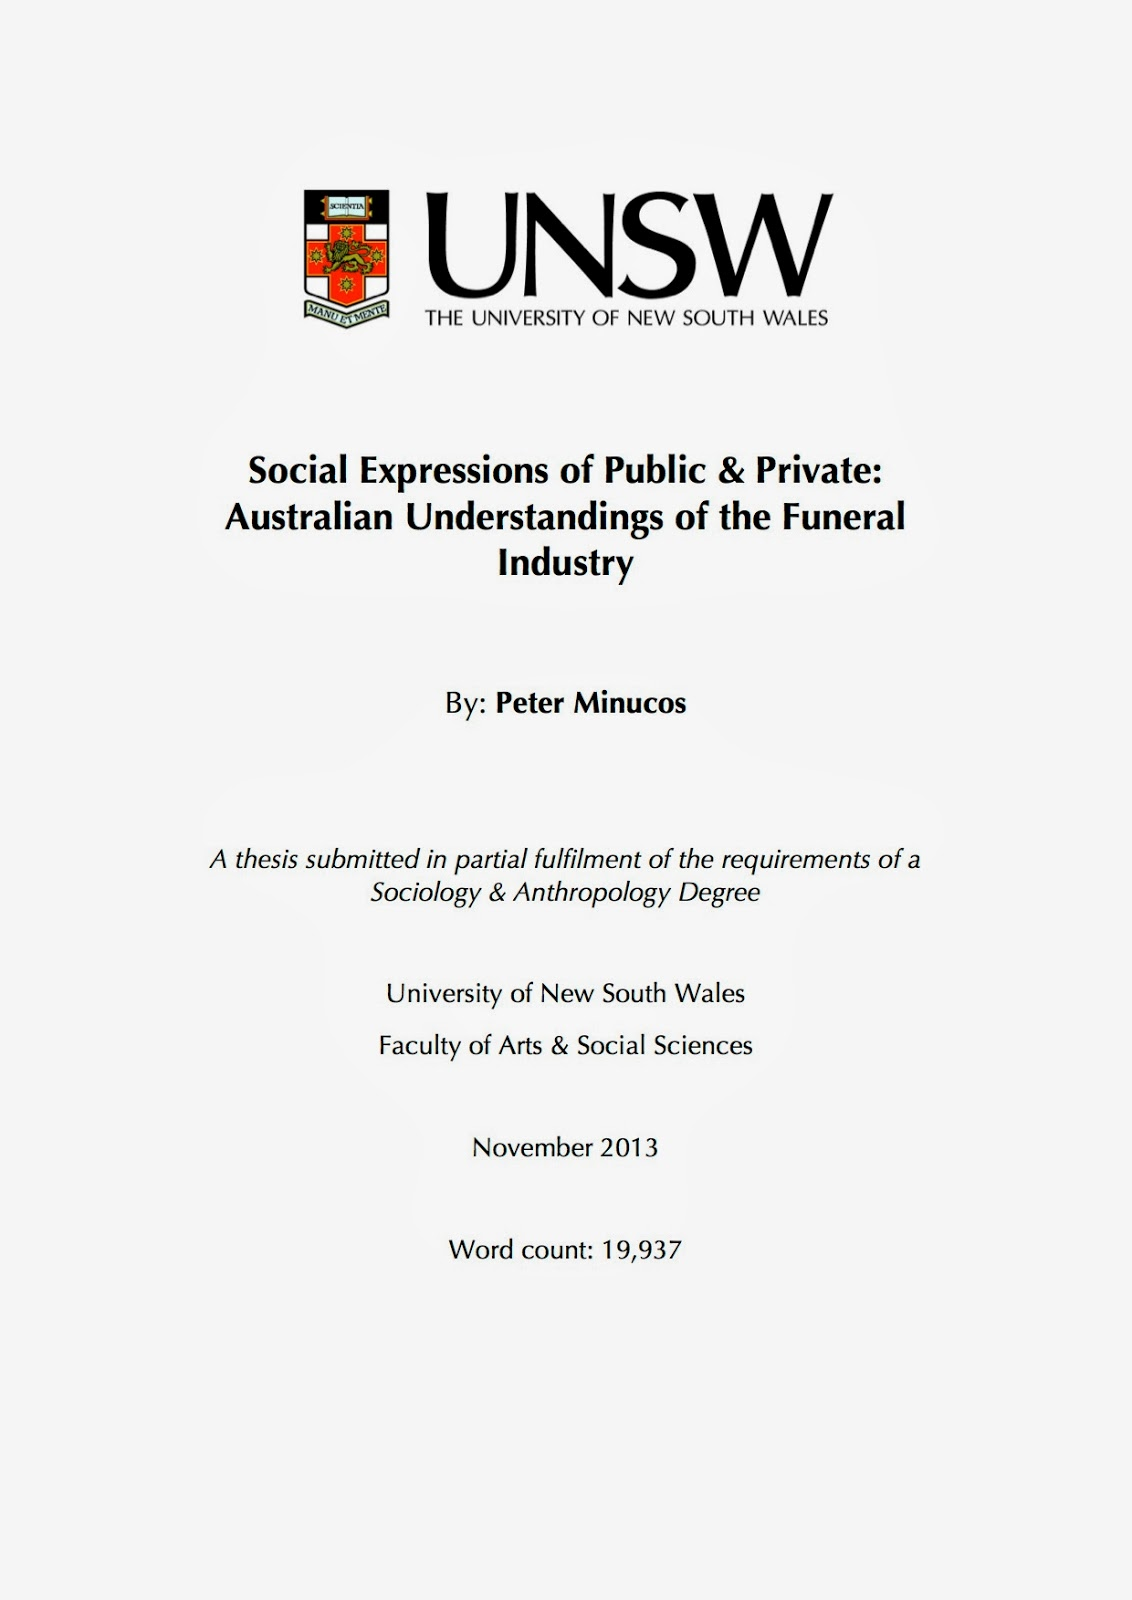 Unsw Cover Letter Unsw Cover Sheet Art And Design Andrian James Blog